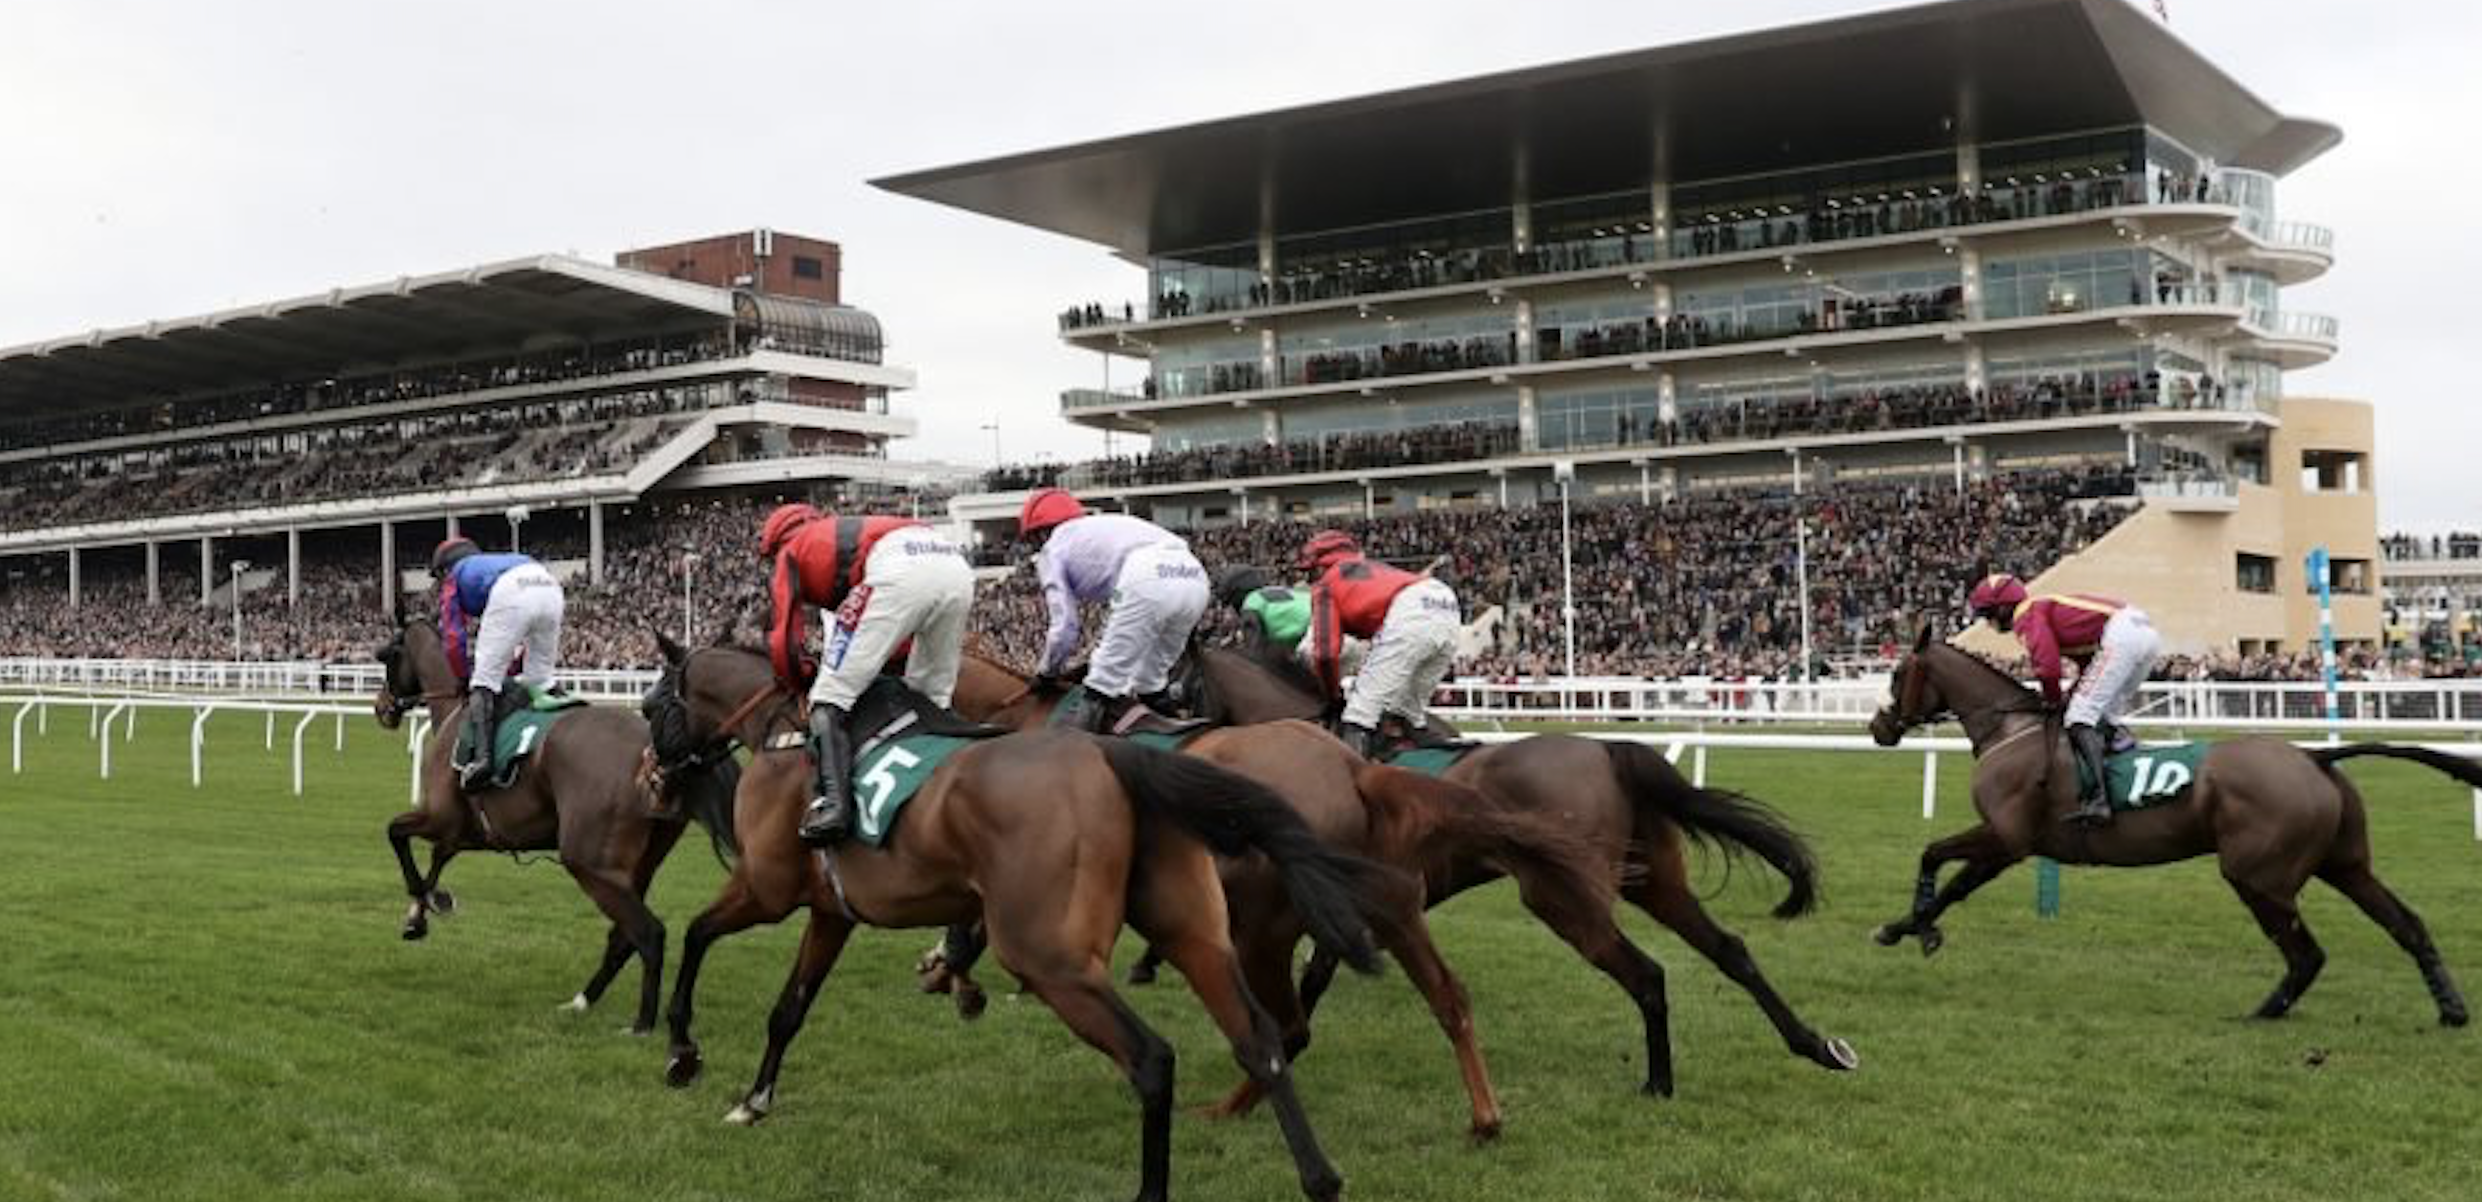 Daily Horse Racing Betting Analysis